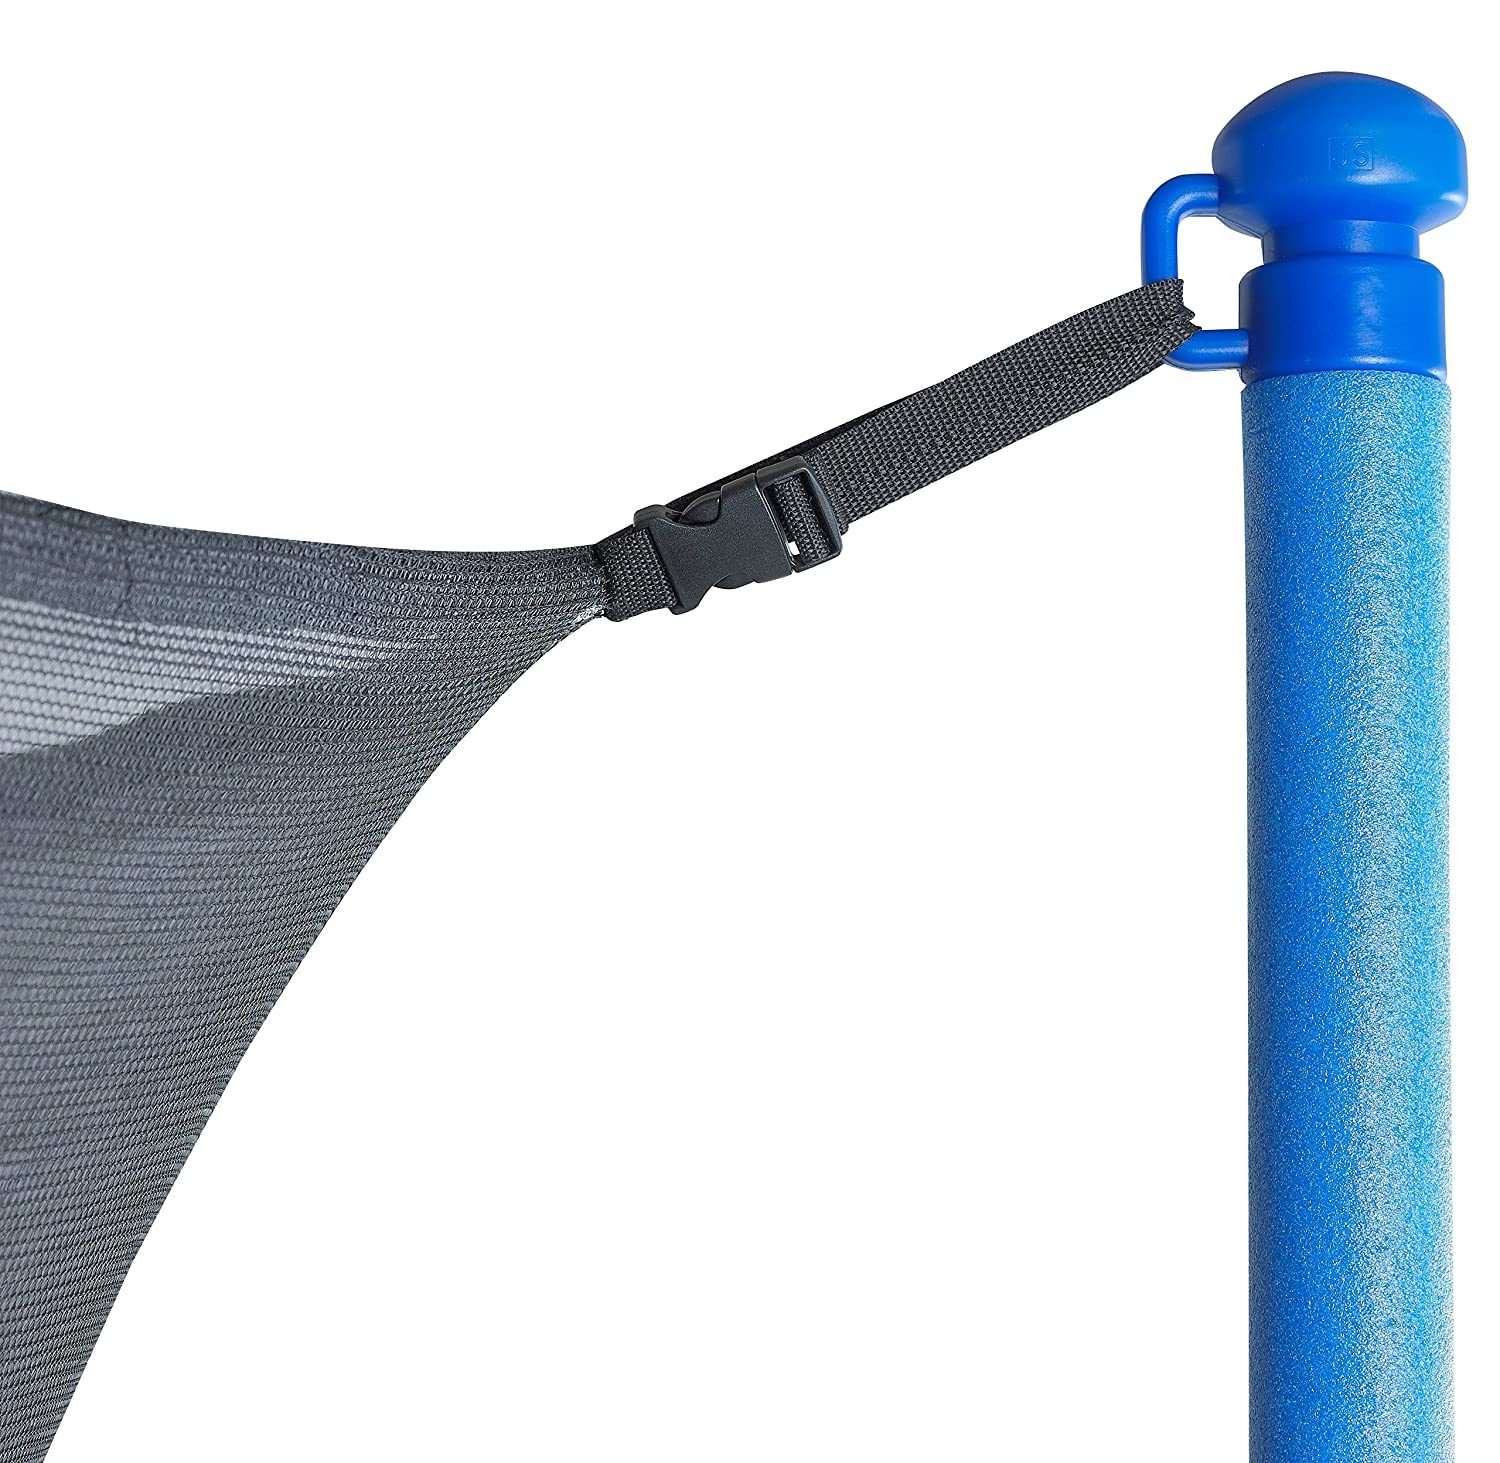 amazoncom upper bounce 14u0027 trampoline net replacement safety netting fence fits 14 ft round frames using 6 poles or 3 arches poles not included toys u0026